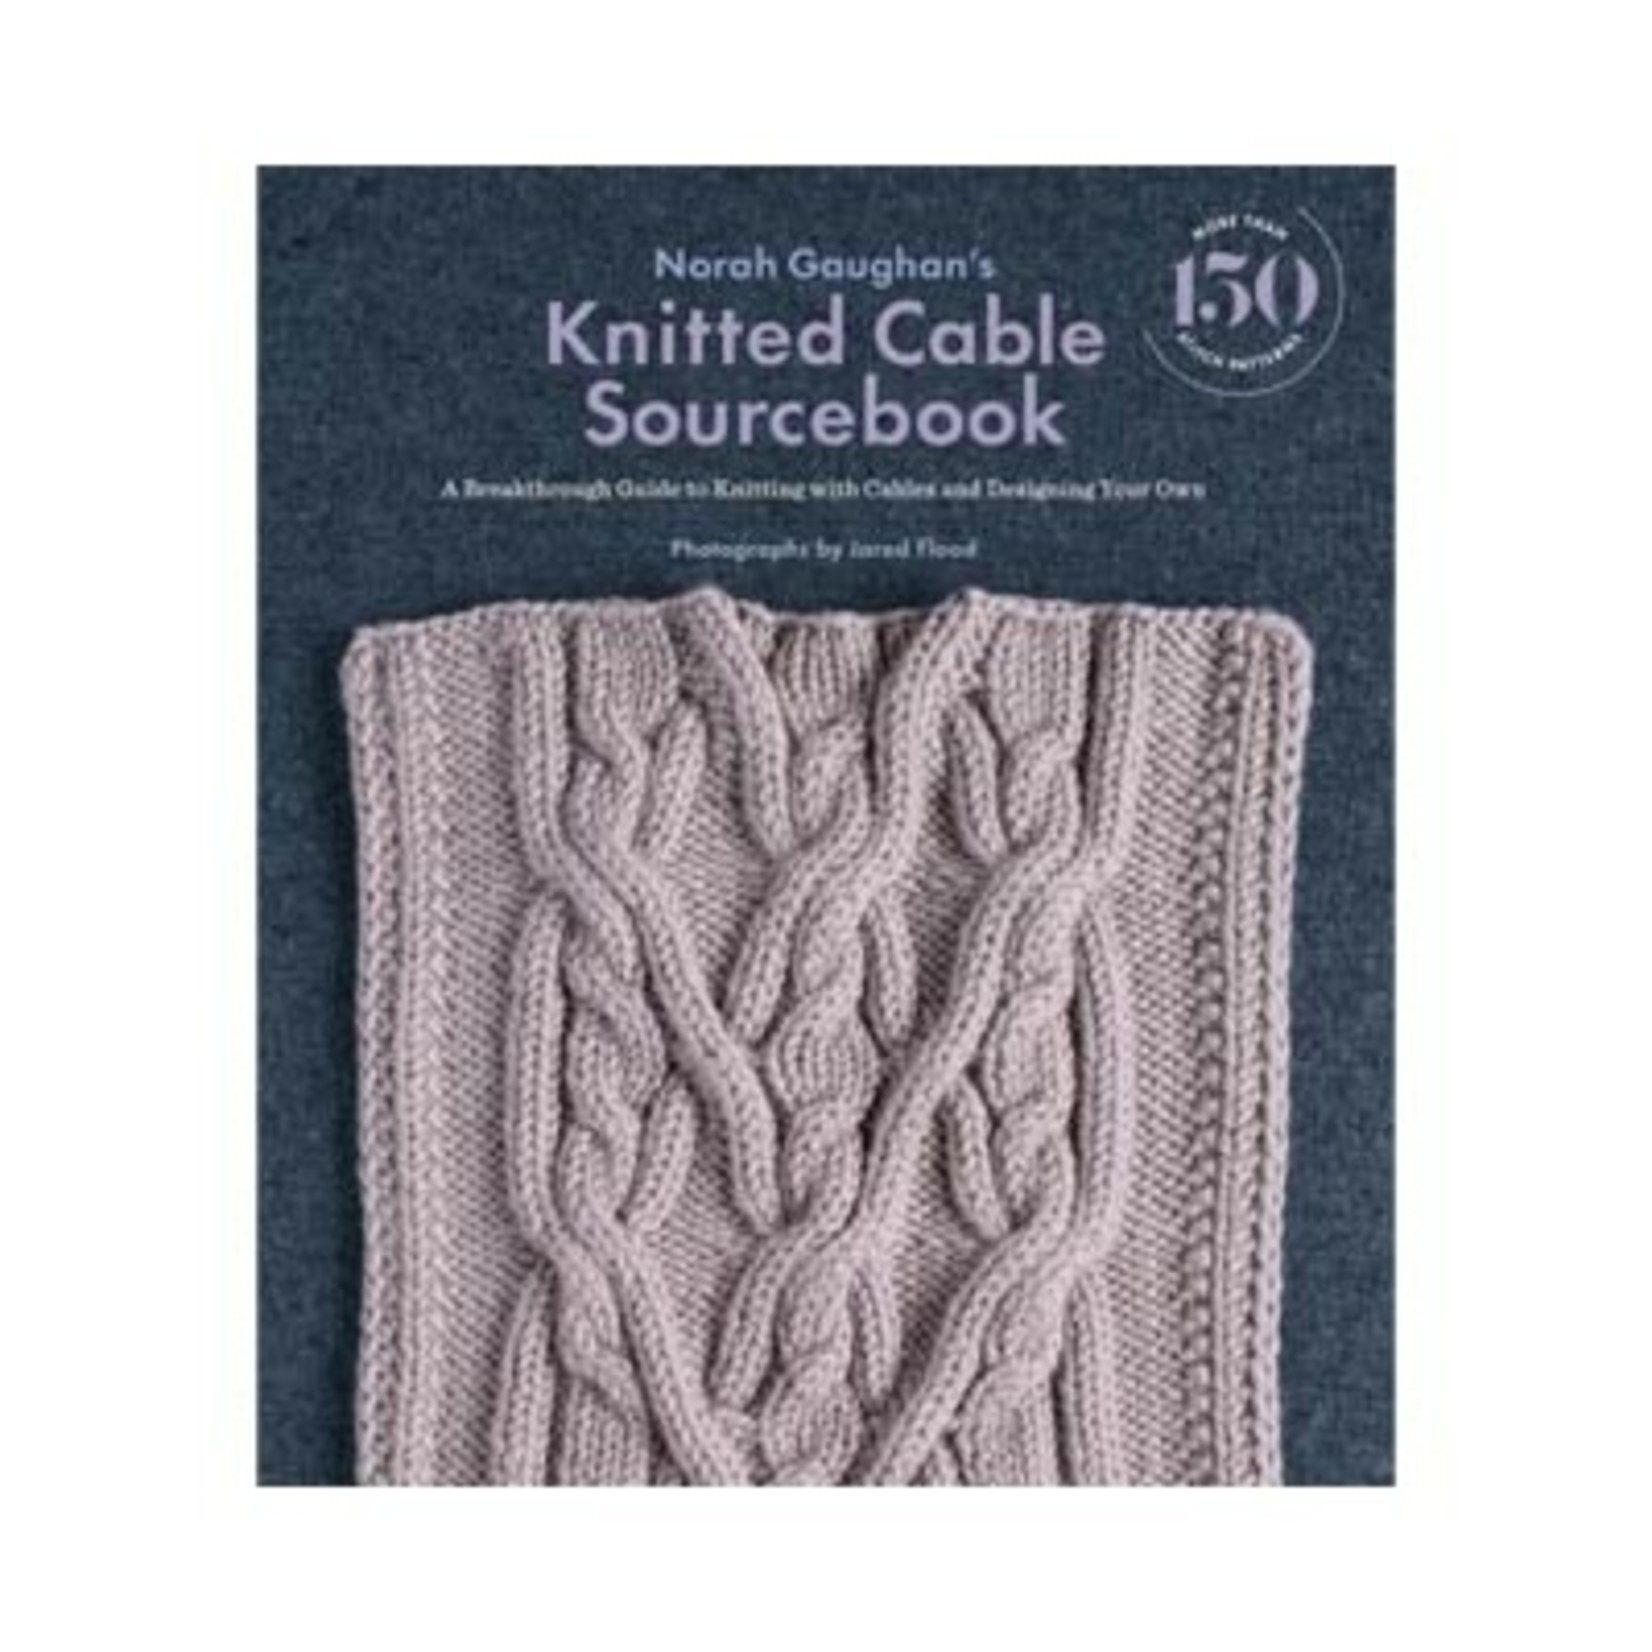 Norah Gaughan - Knitted Cable Sourcebook